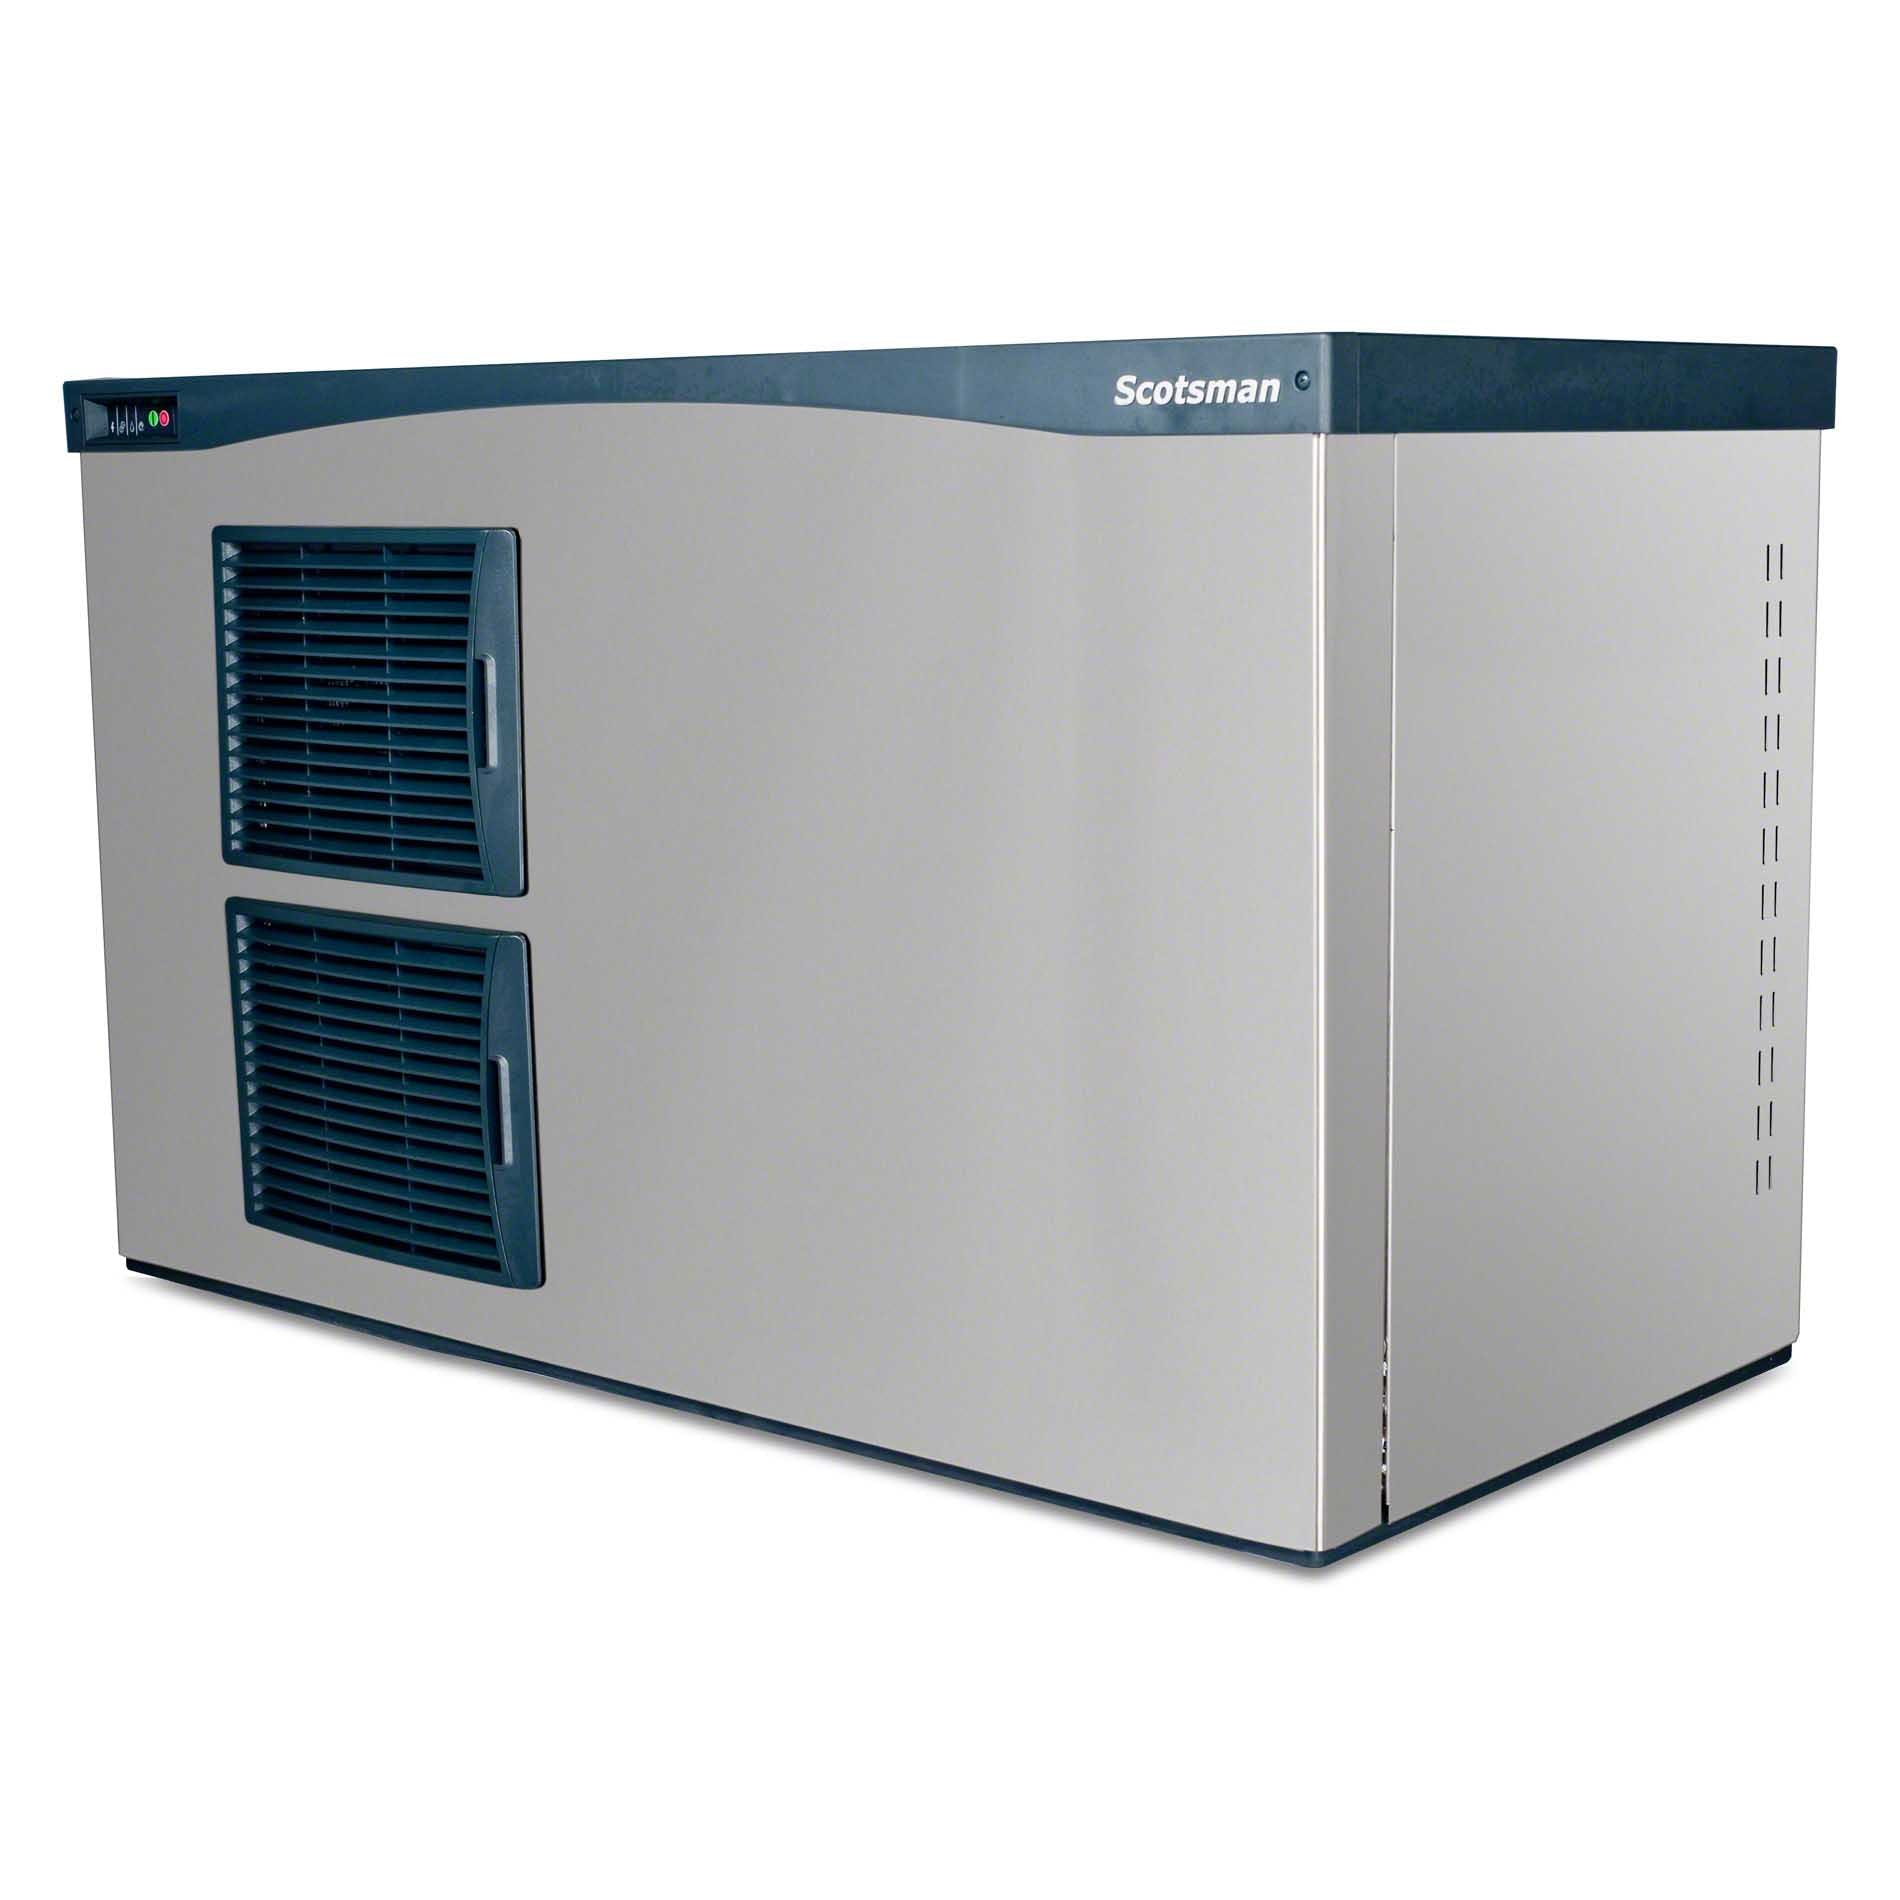 Scotsman - C1448SA-3A 1553 lb Half Size Cube Ice Machine - Prodigy Series - sold by Food Service Warehouse